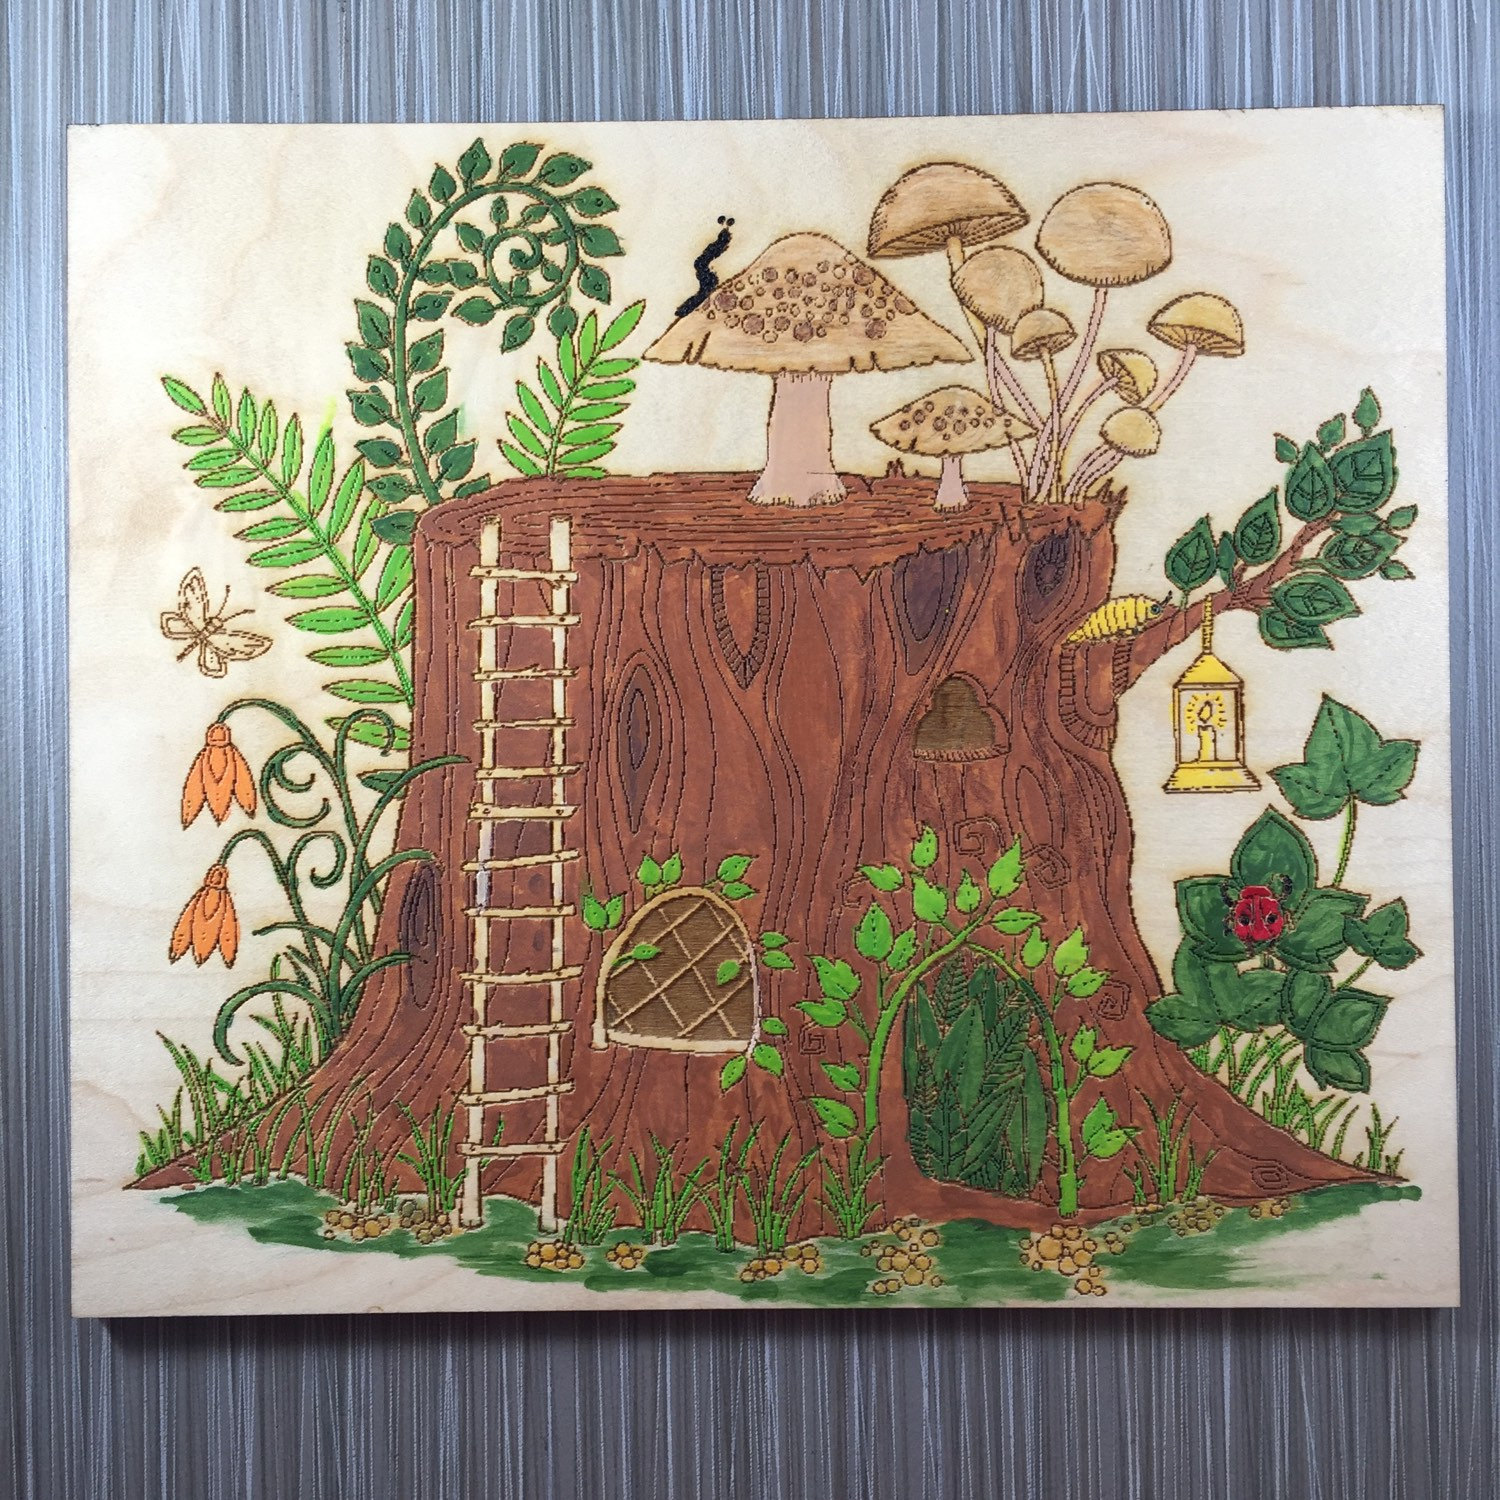 Tree Stump Wall Decor : Tree stump house hand painted wall decor plaques signs